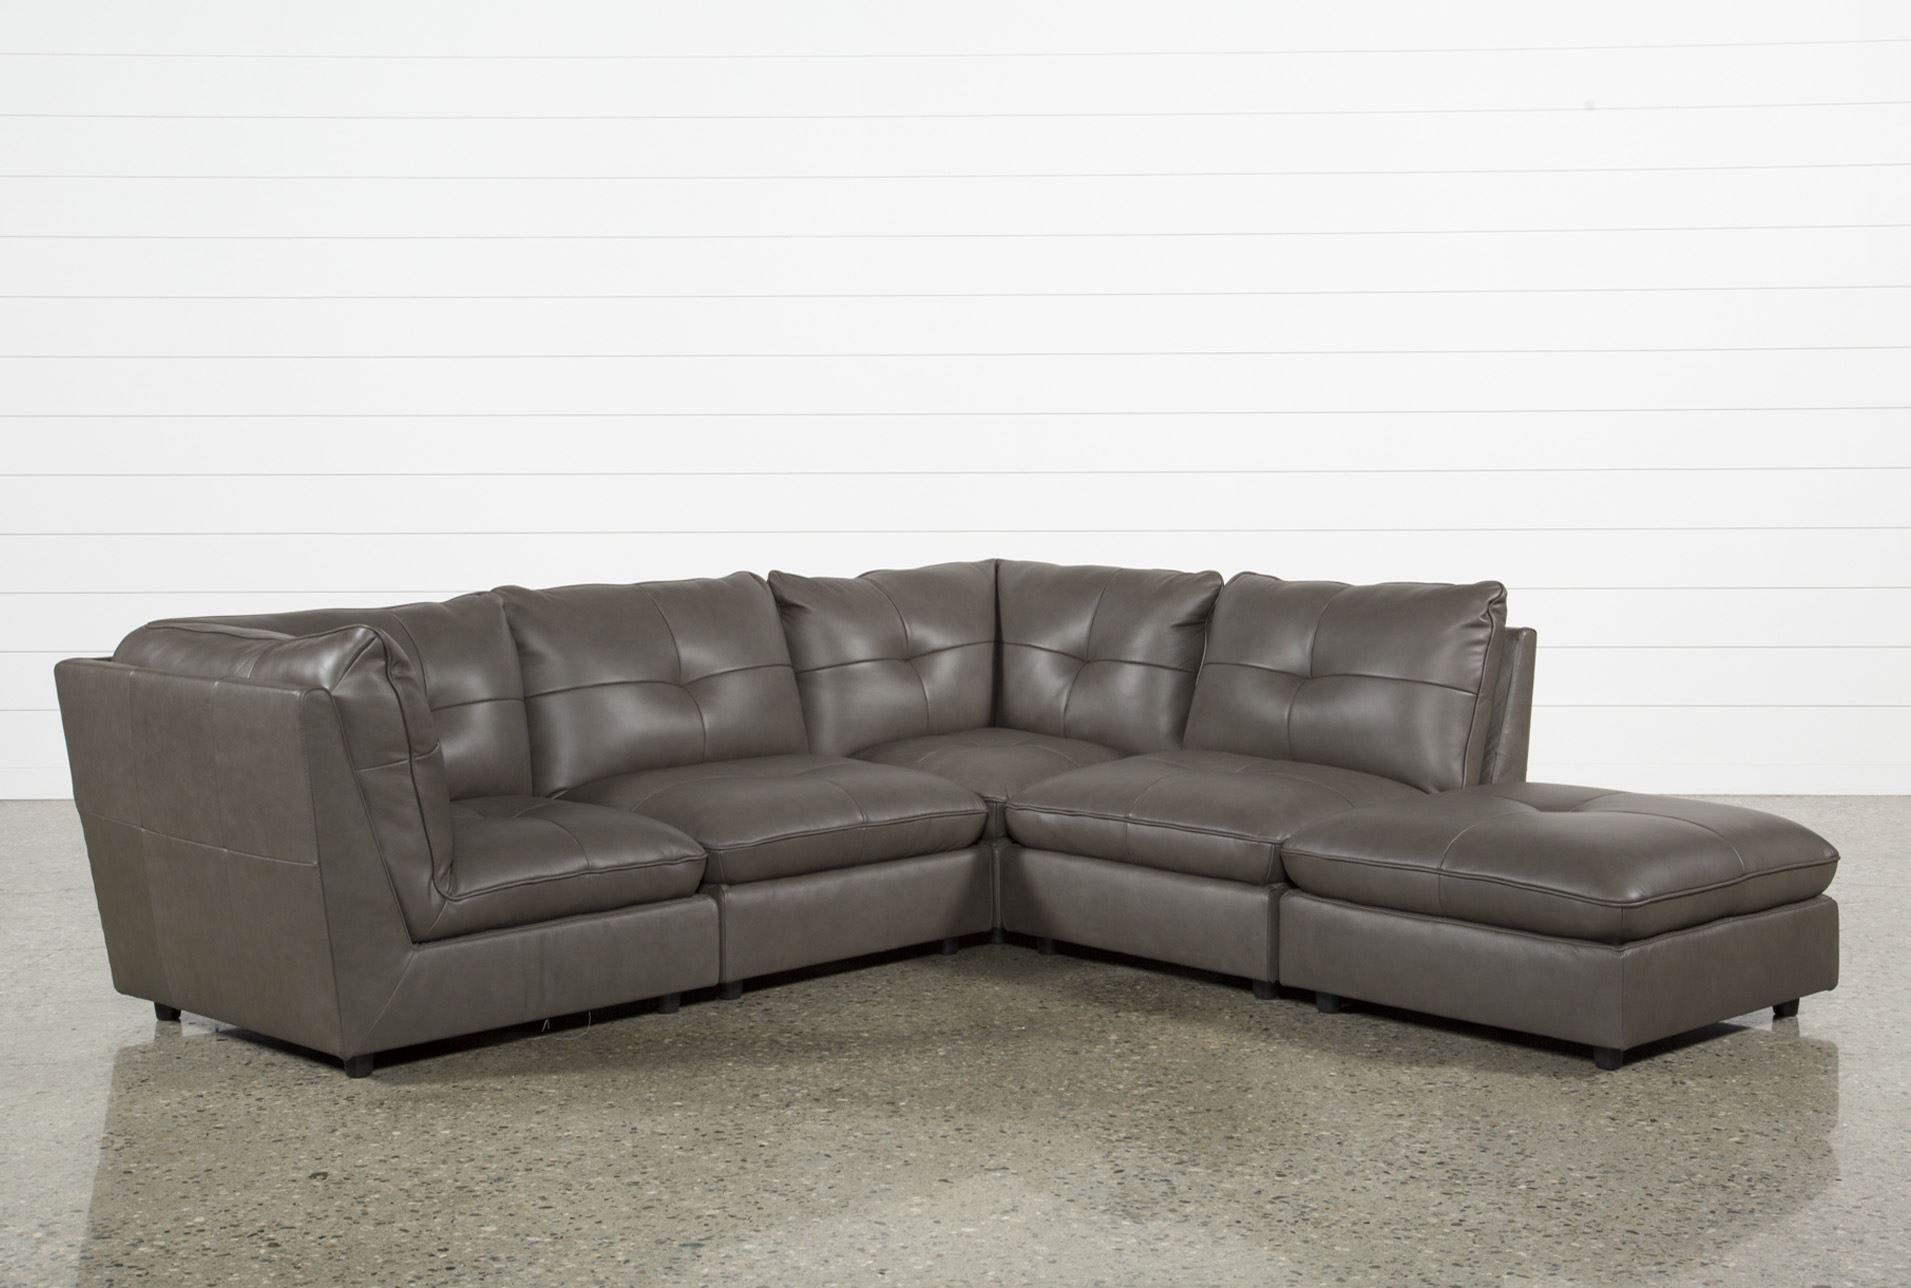 Unique Sectional Sofas Dallas Pictures Sectional Sofas Dallas Lovely  Sectionals Sofas Free Assembly With Delivery Living